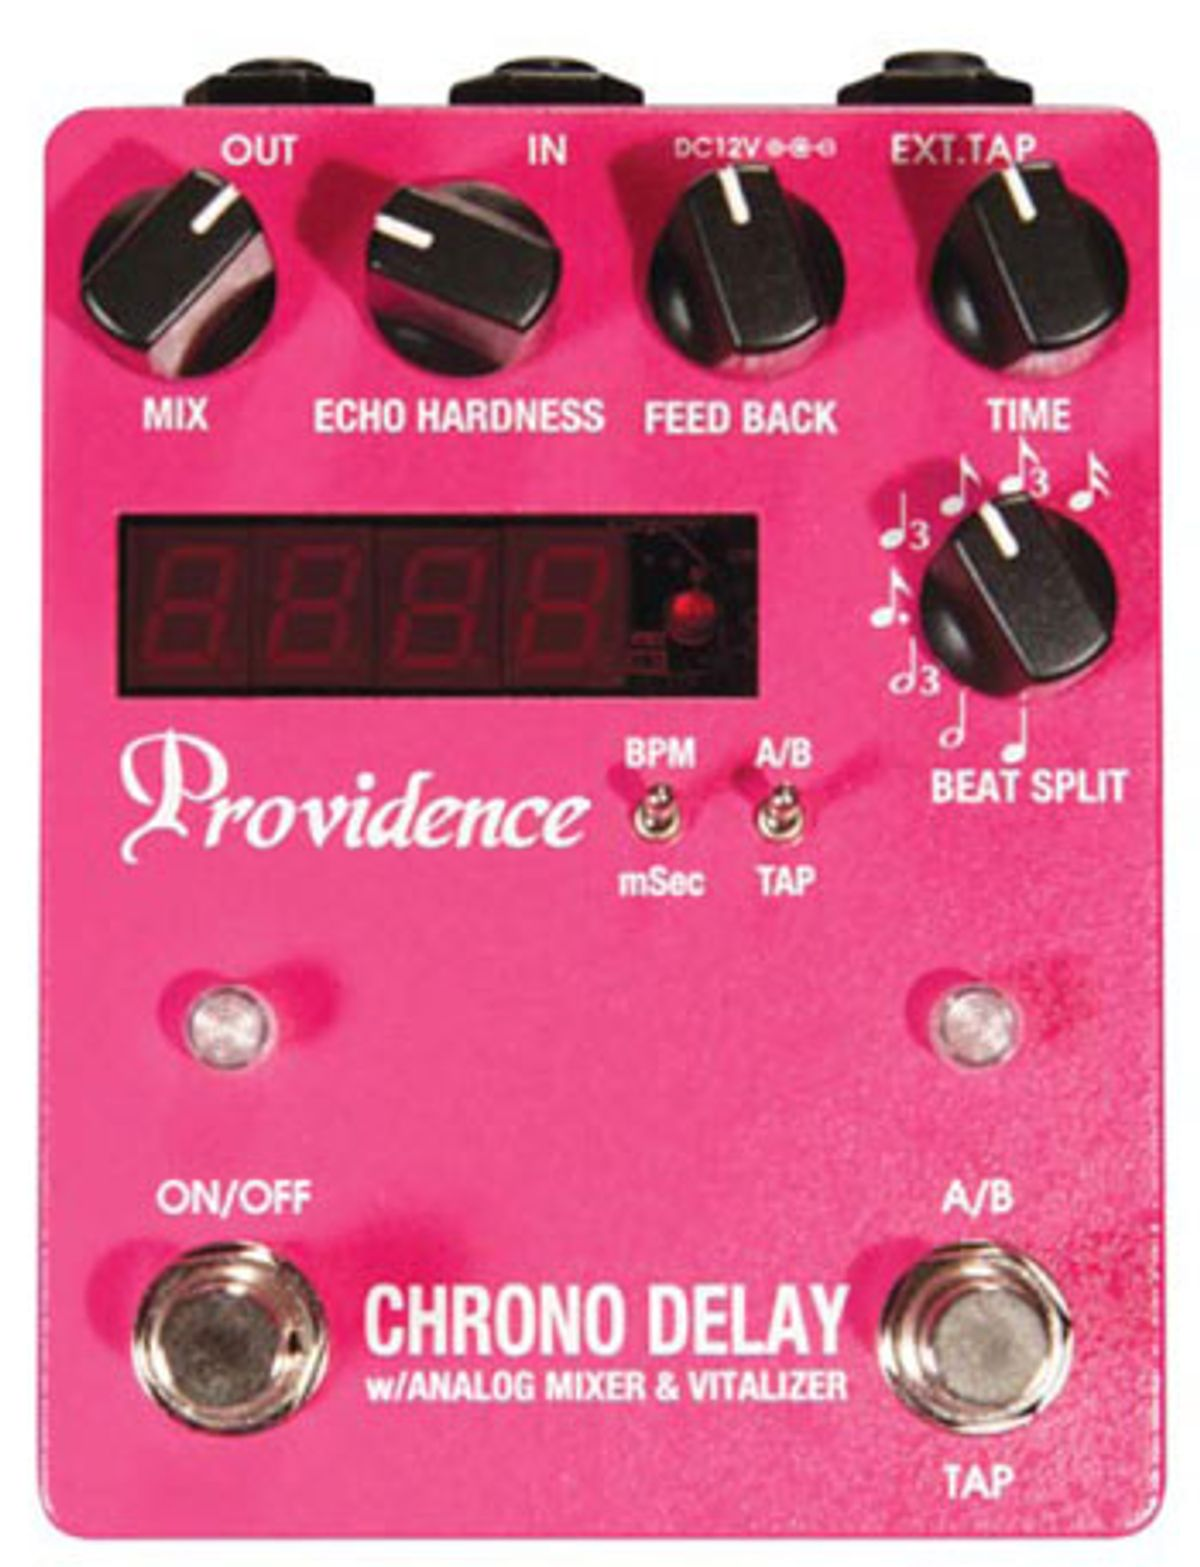 Providence Chrono Delay DLY-4 Pedal Review